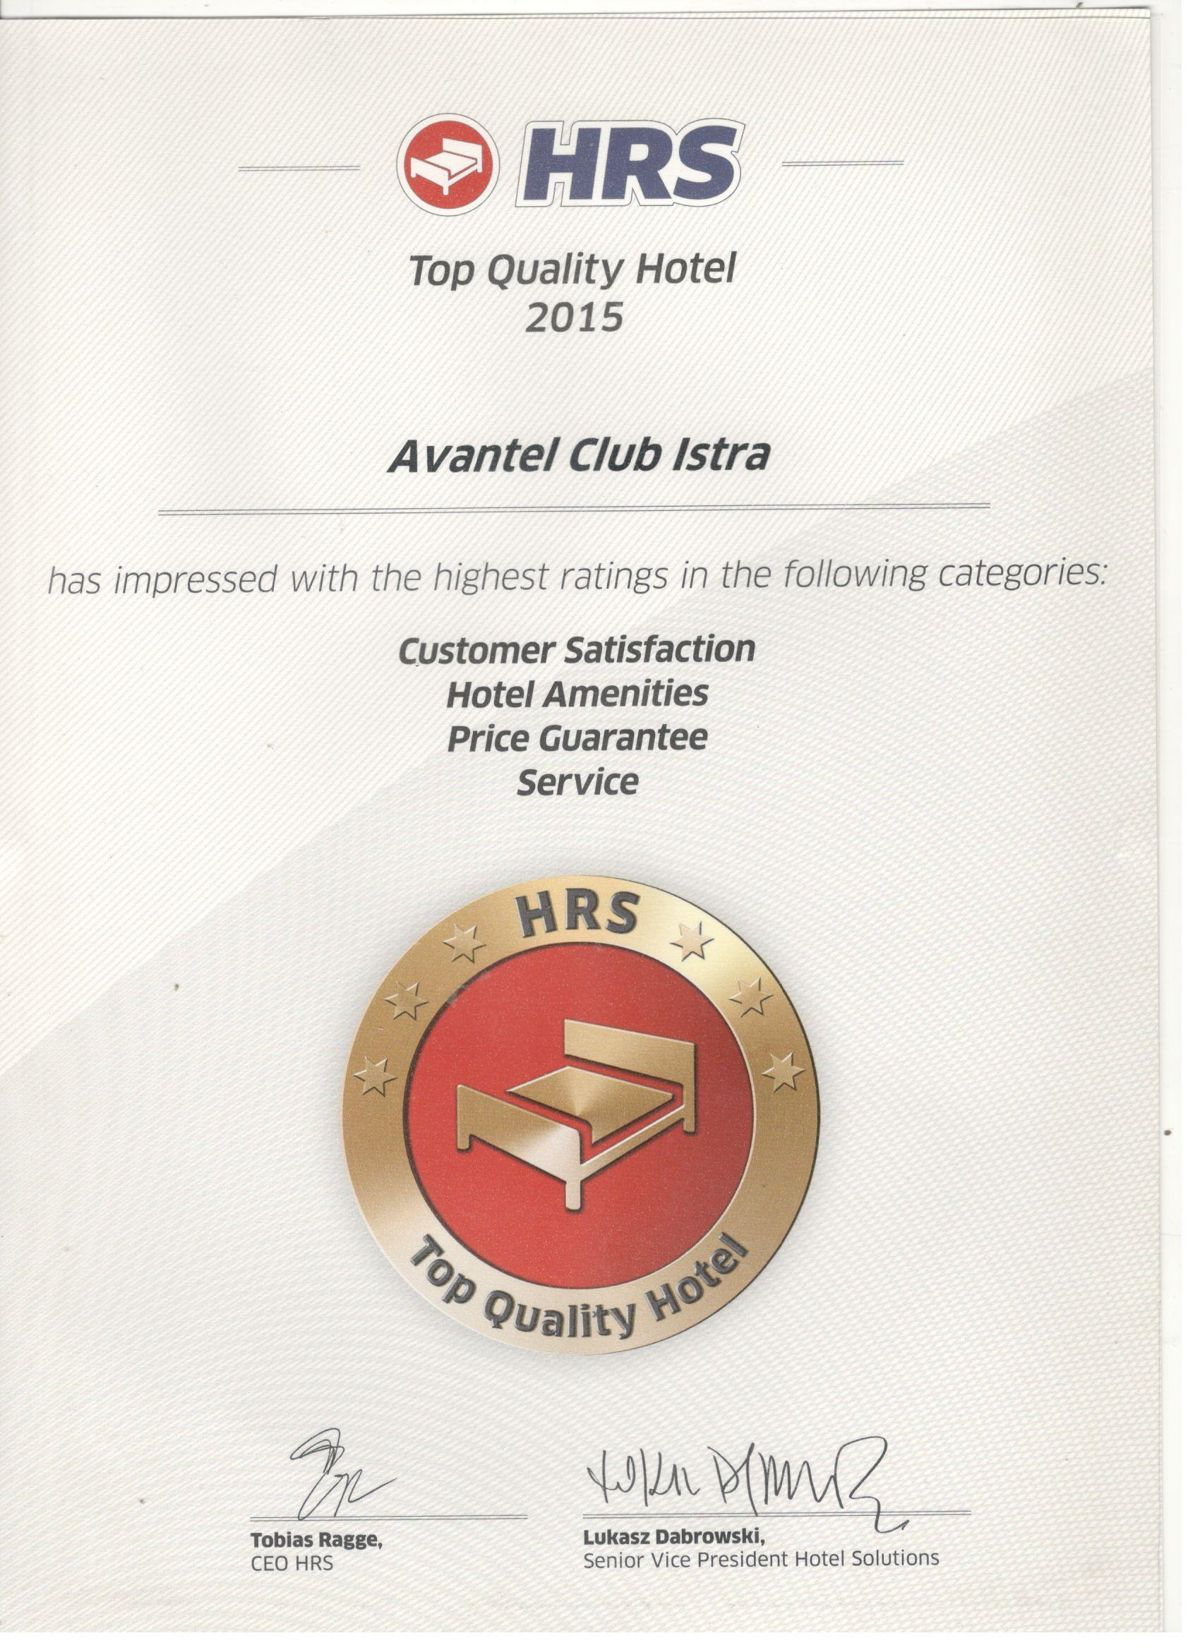 HRS, Top Quality Hotel 2015